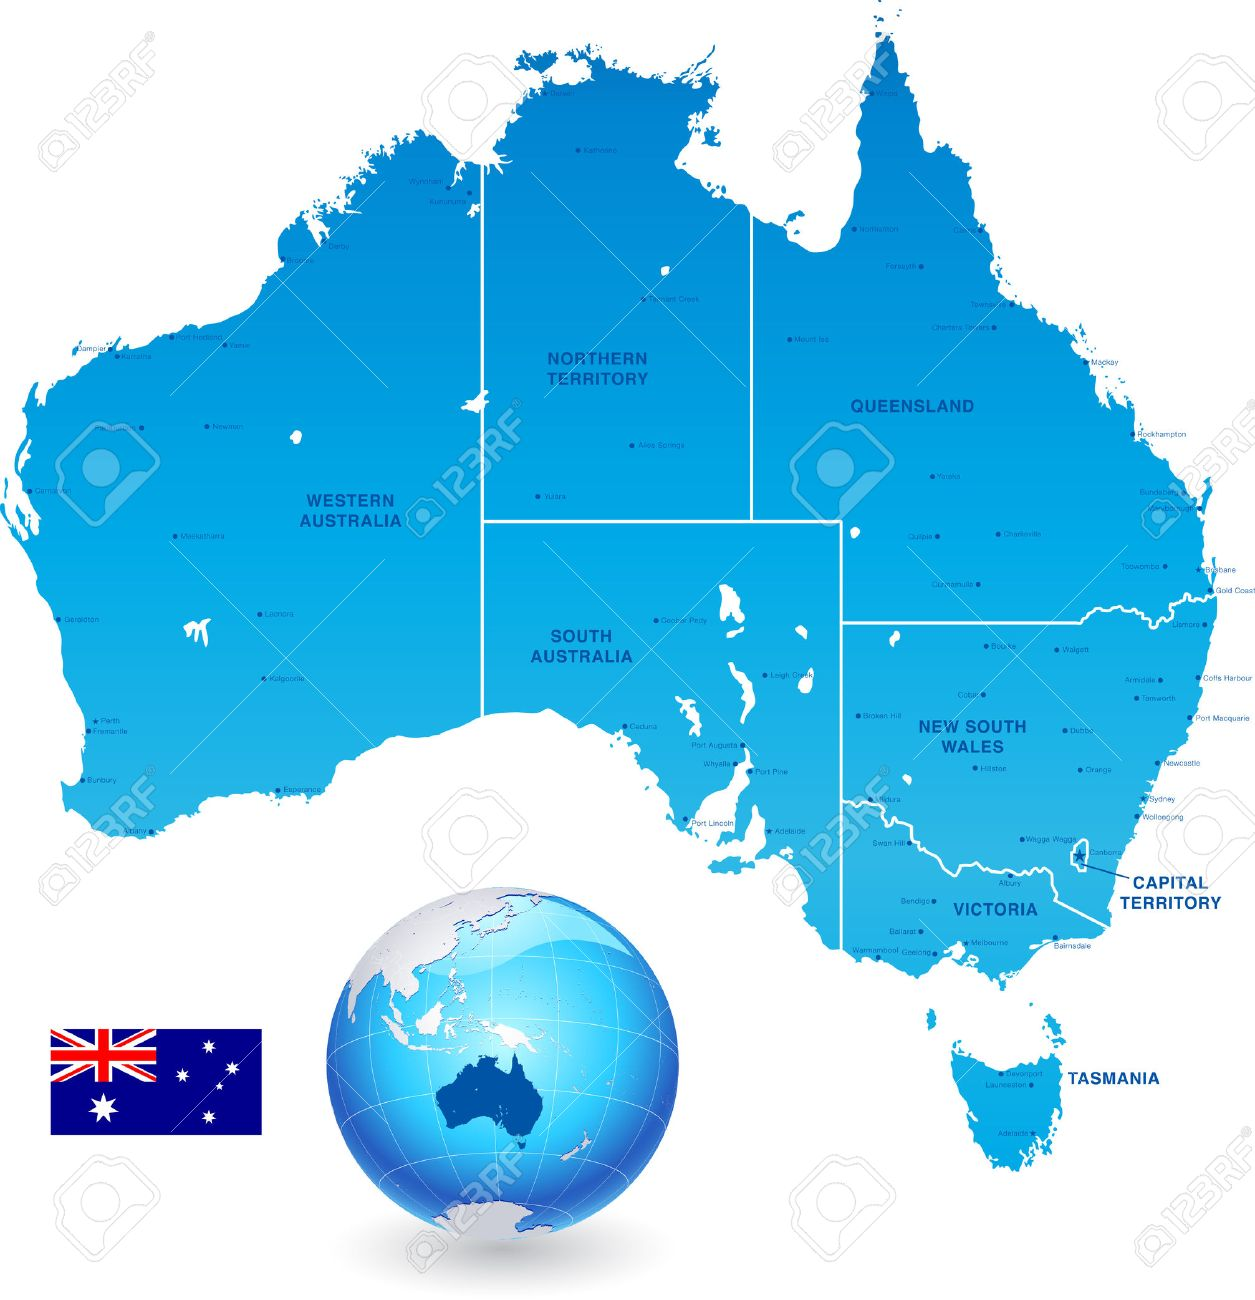 Major Cities In Australia Map.High Detail Vector Map Of Australia With States And Major Cities